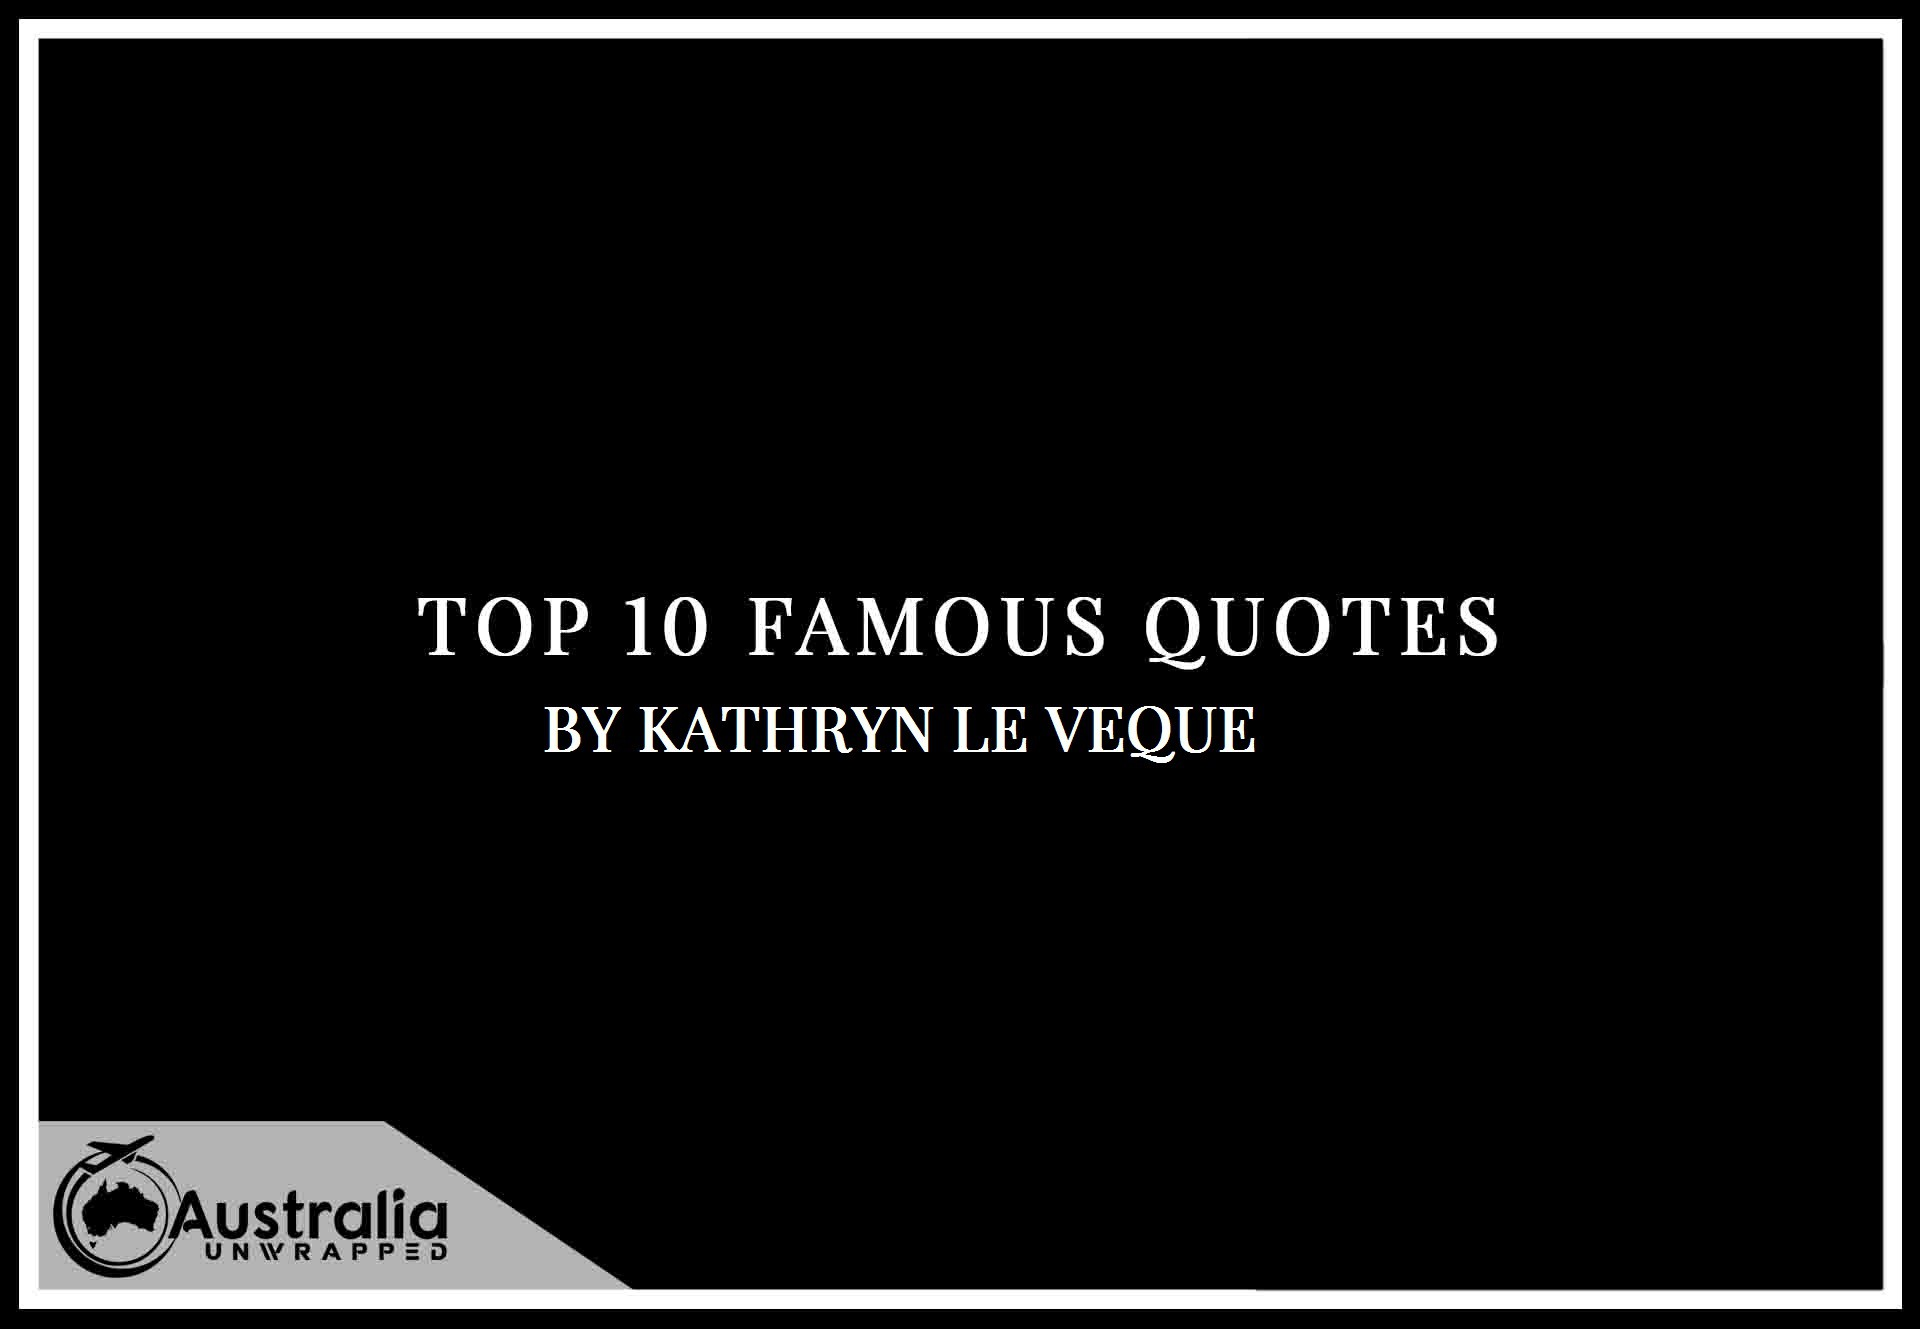 Kathryn Le Veque's Top 10 Popular and Famous Quotes